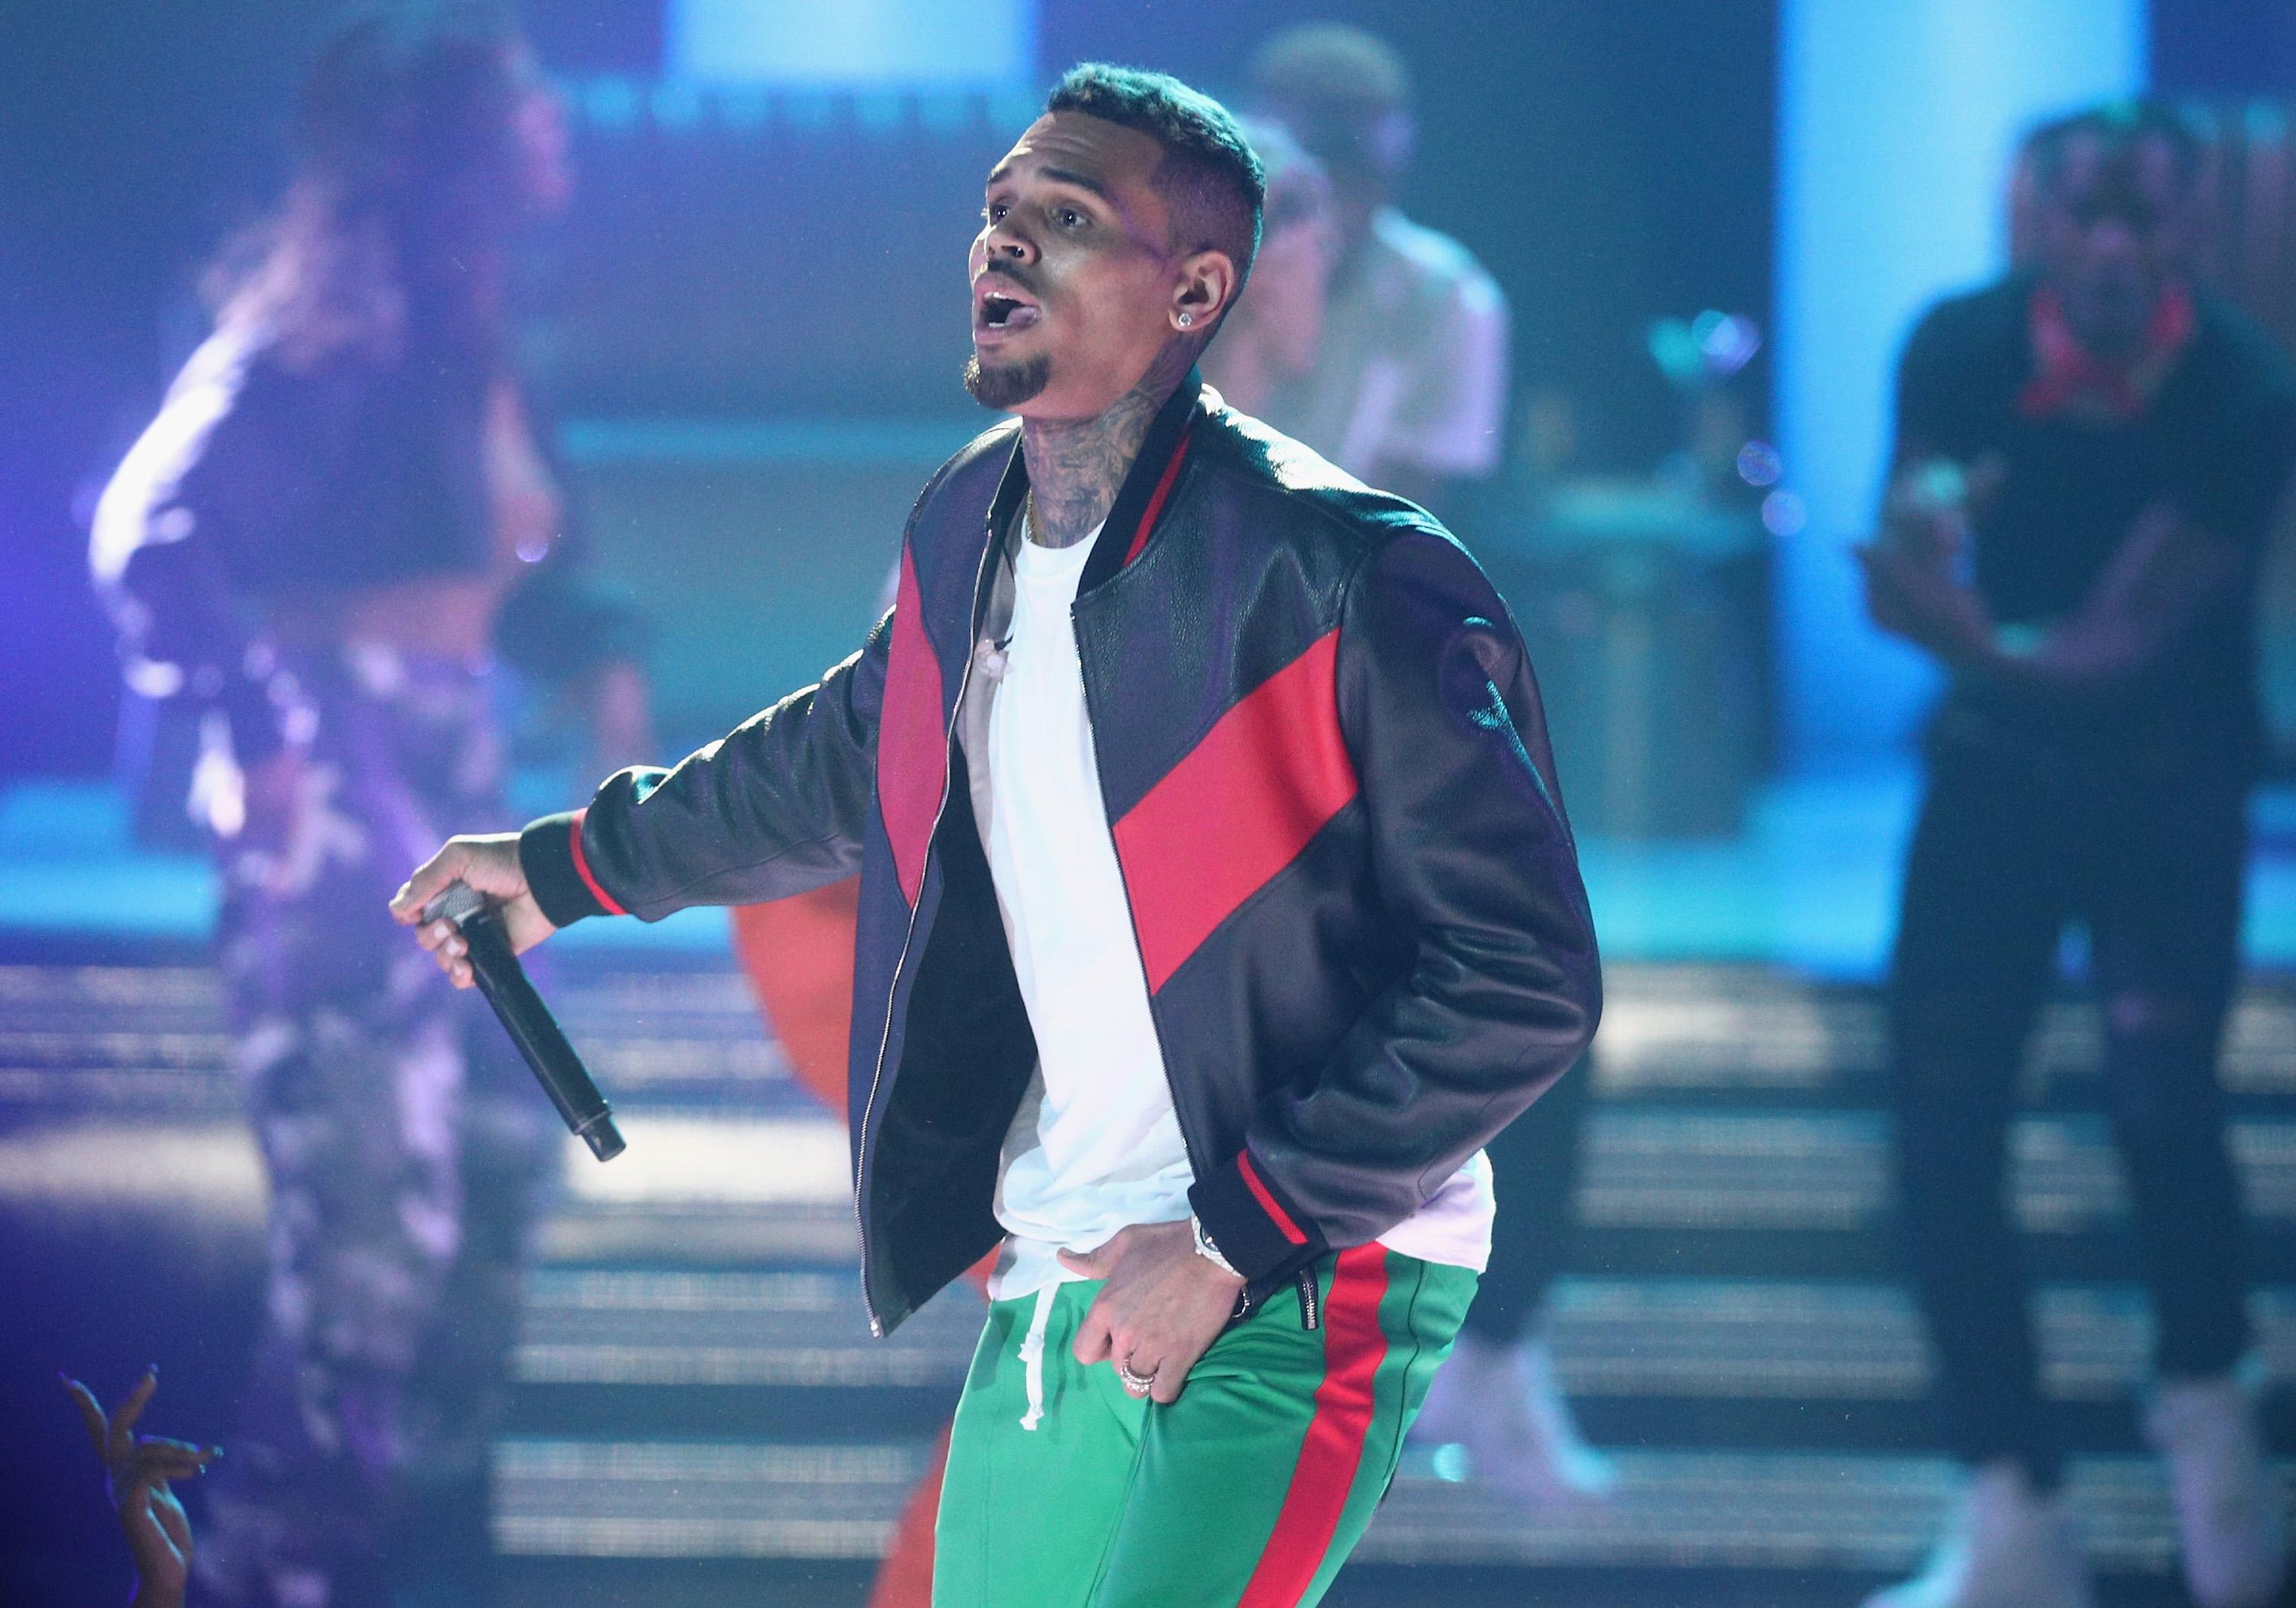 Chris Brown on stage.